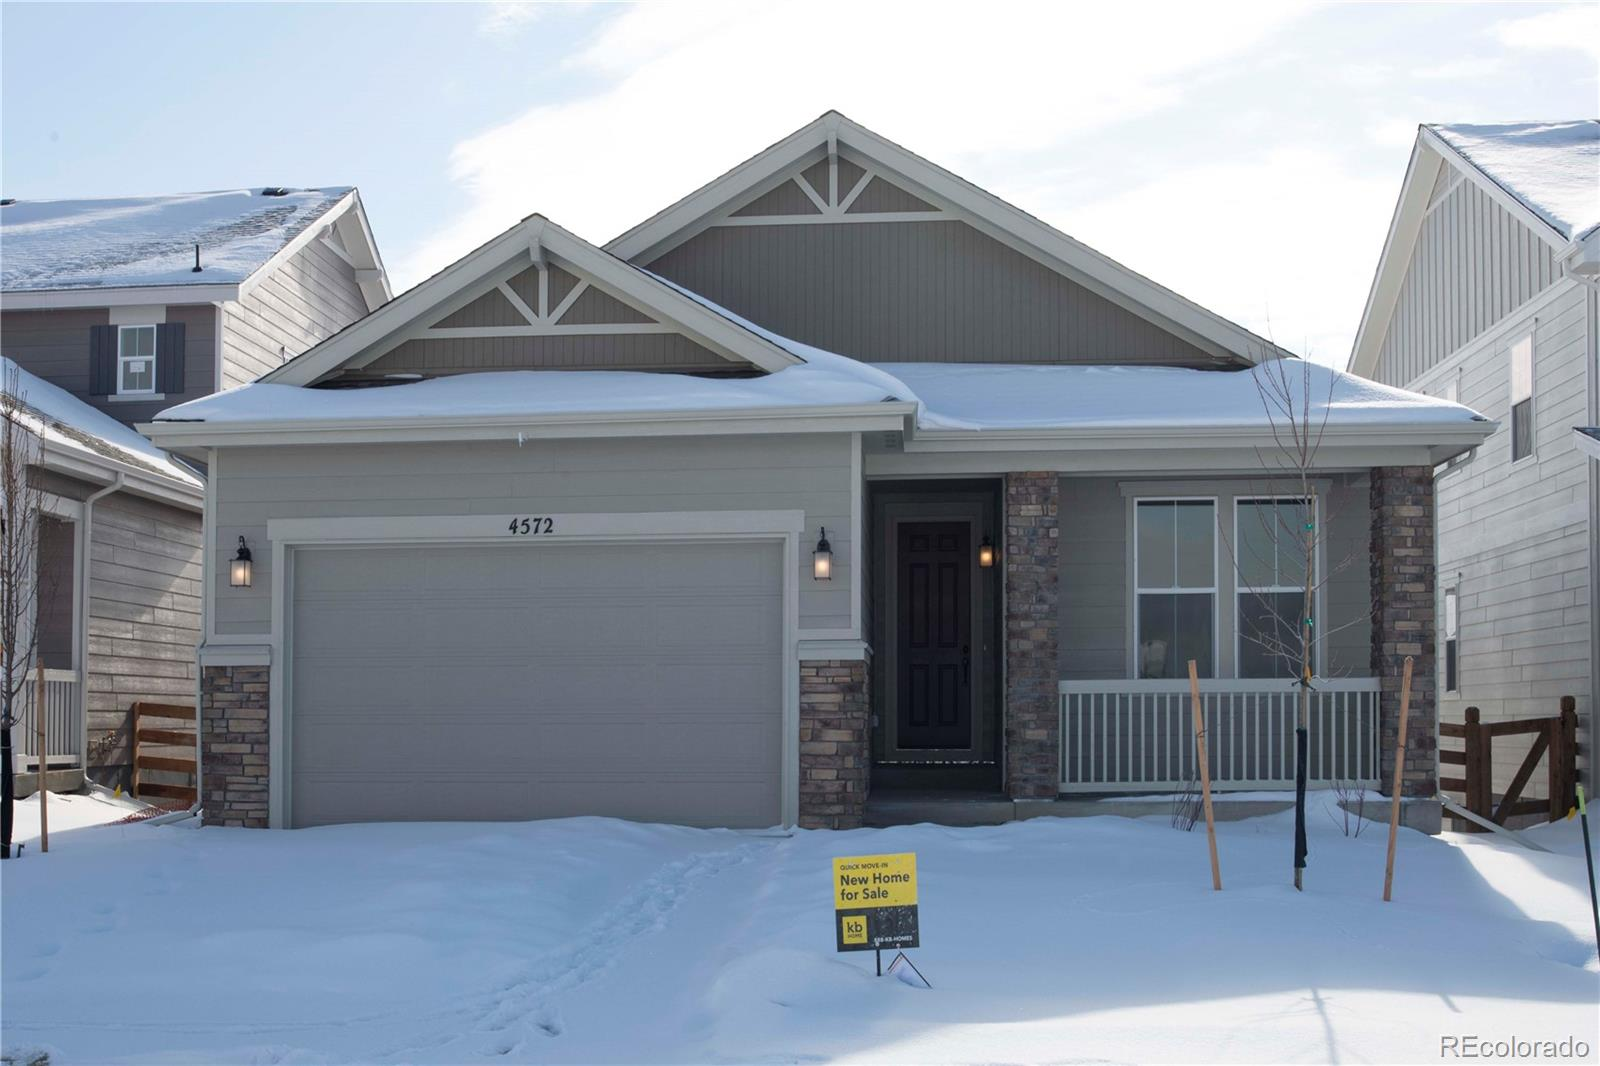 MLS# 5594321 - 1 - 4572 S Perth Court, Aurora, CO 80015